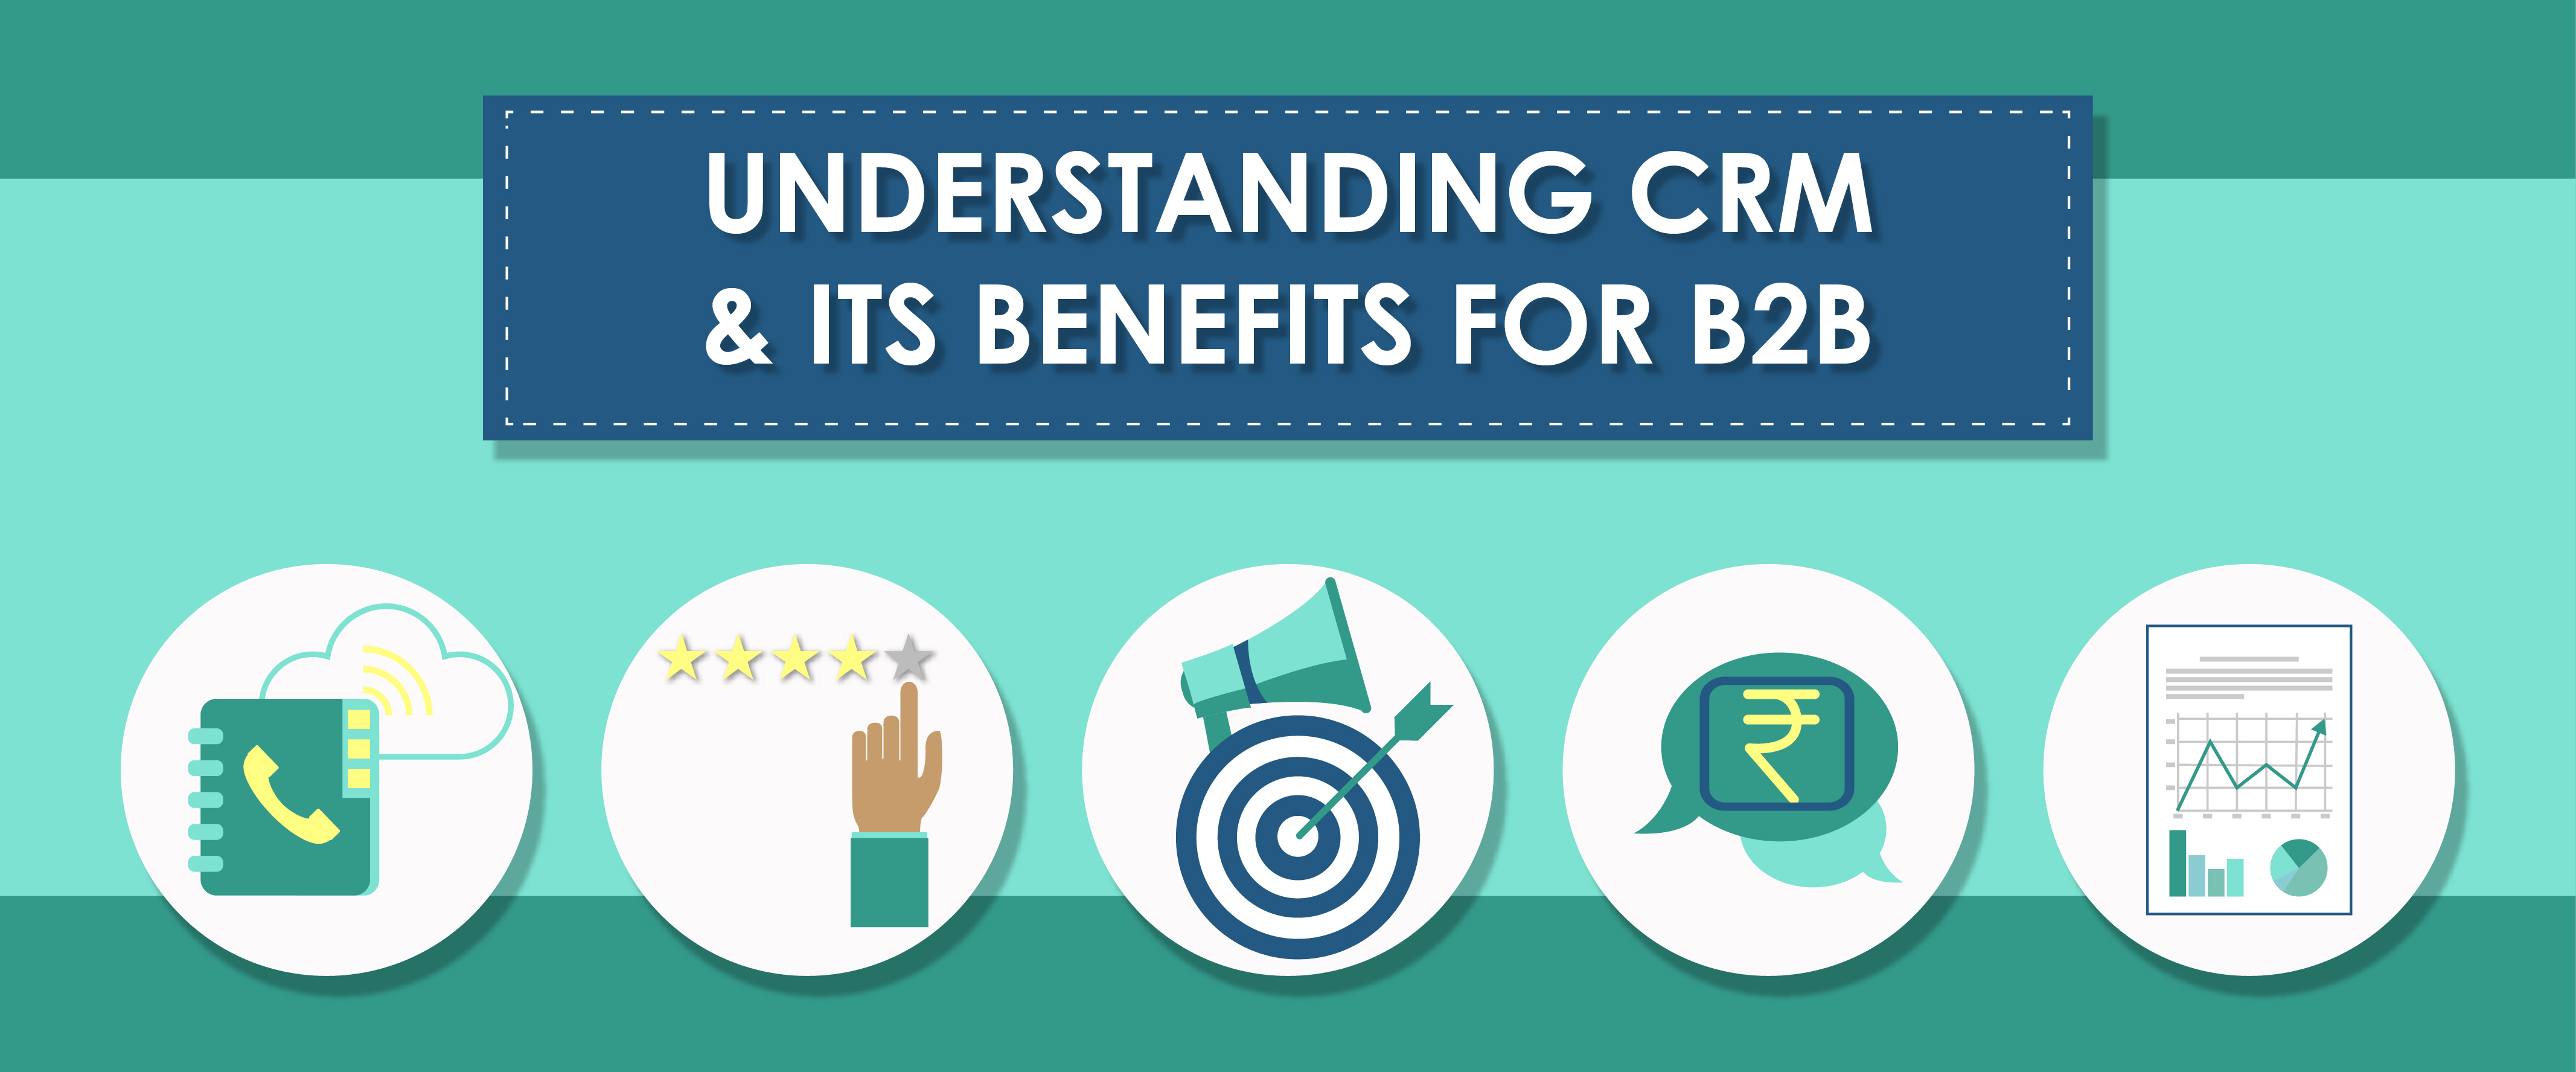 Understanding CRM and Its Benefits for B2B